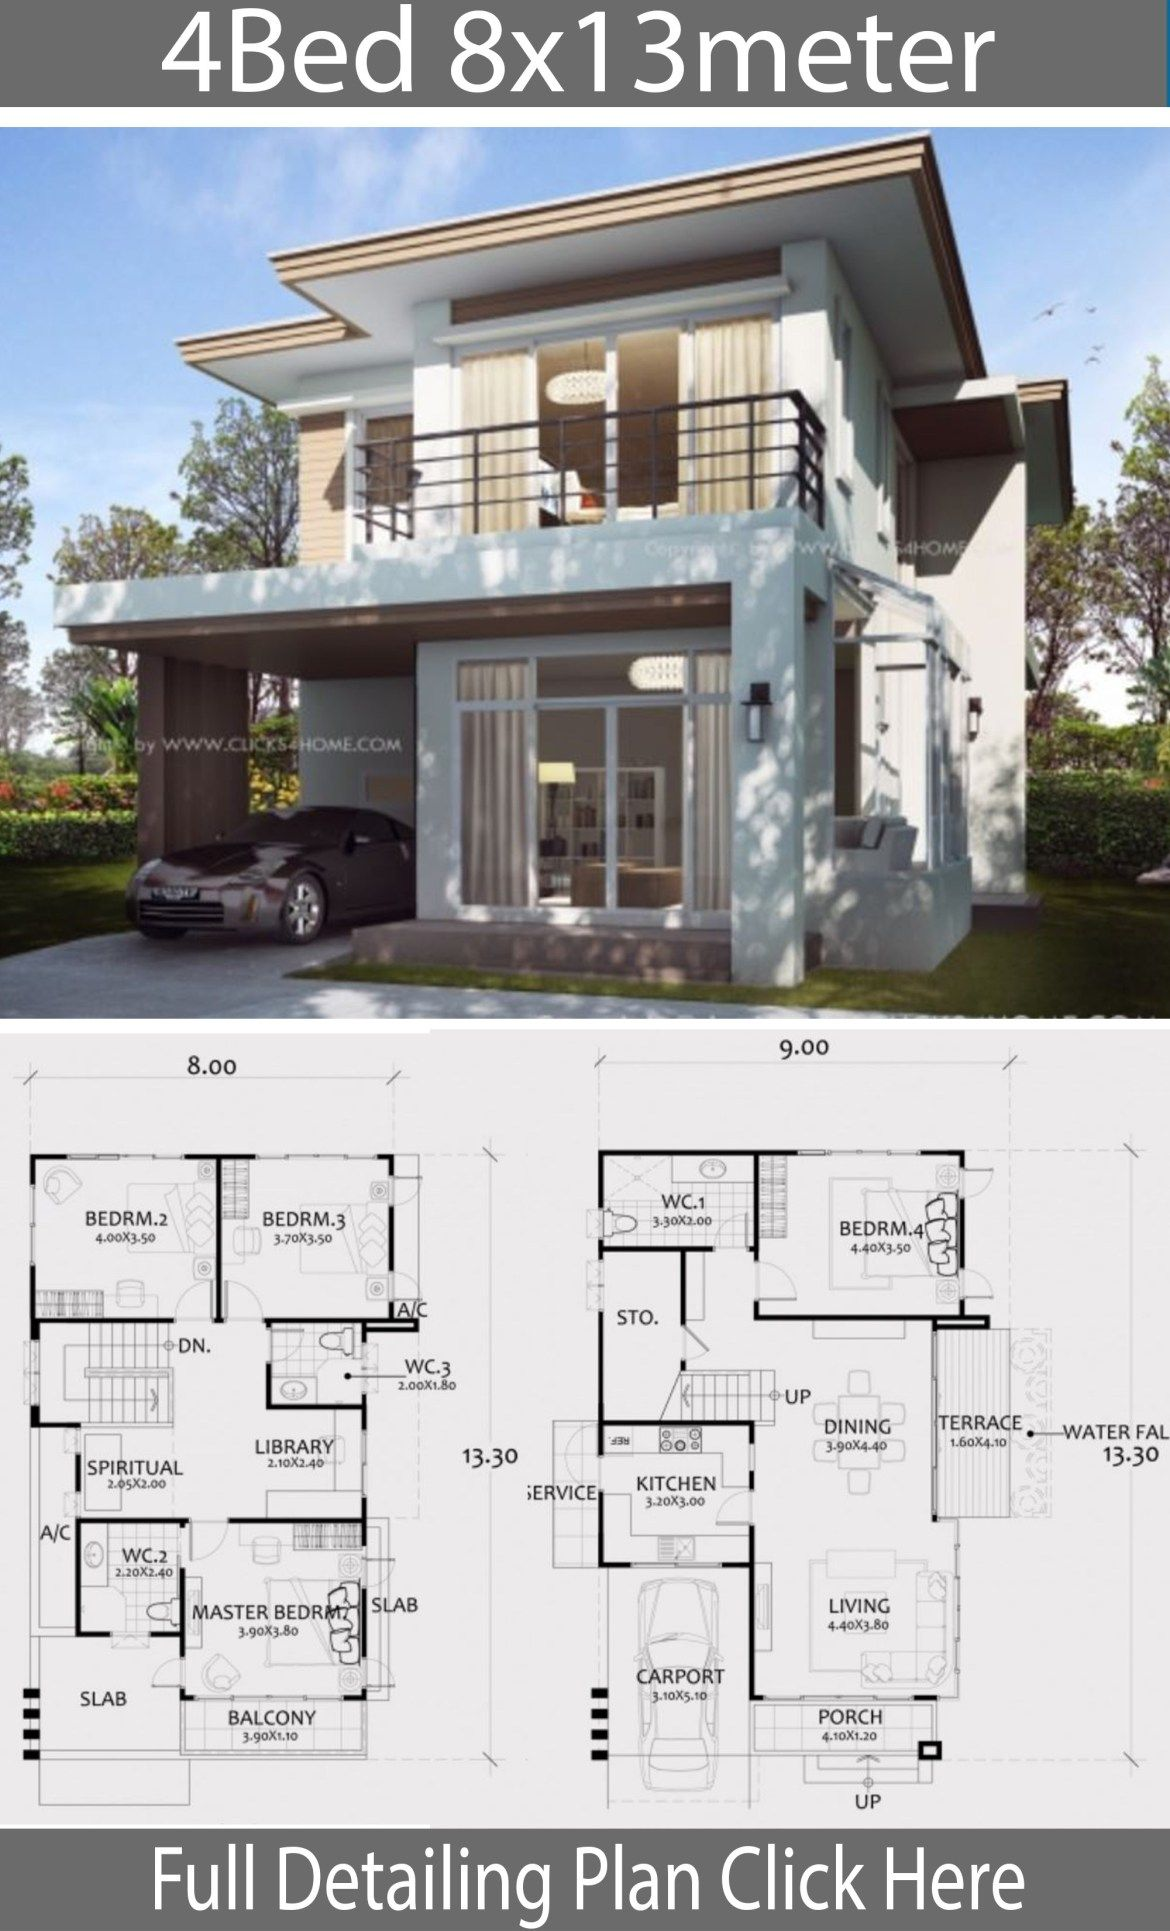 Home Design Plan 8x13m With 4 Bedrooms With Images Architectural House Plans Duplex House Design House Front Design